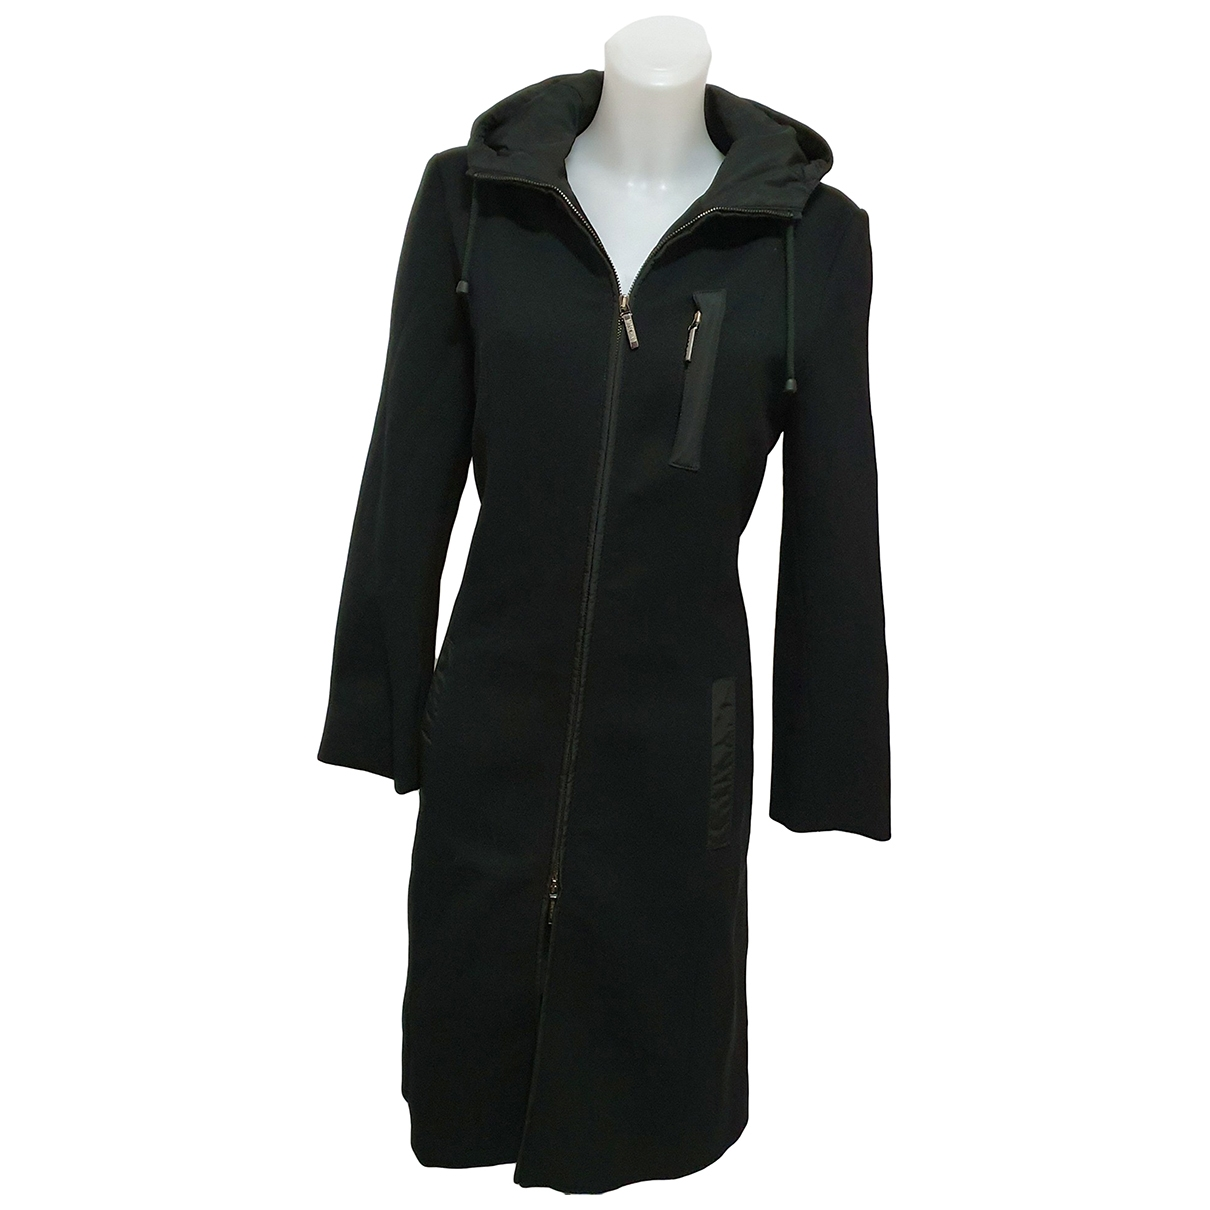 Moschino Cheap And Chic \N Black coat for Women 40 FR